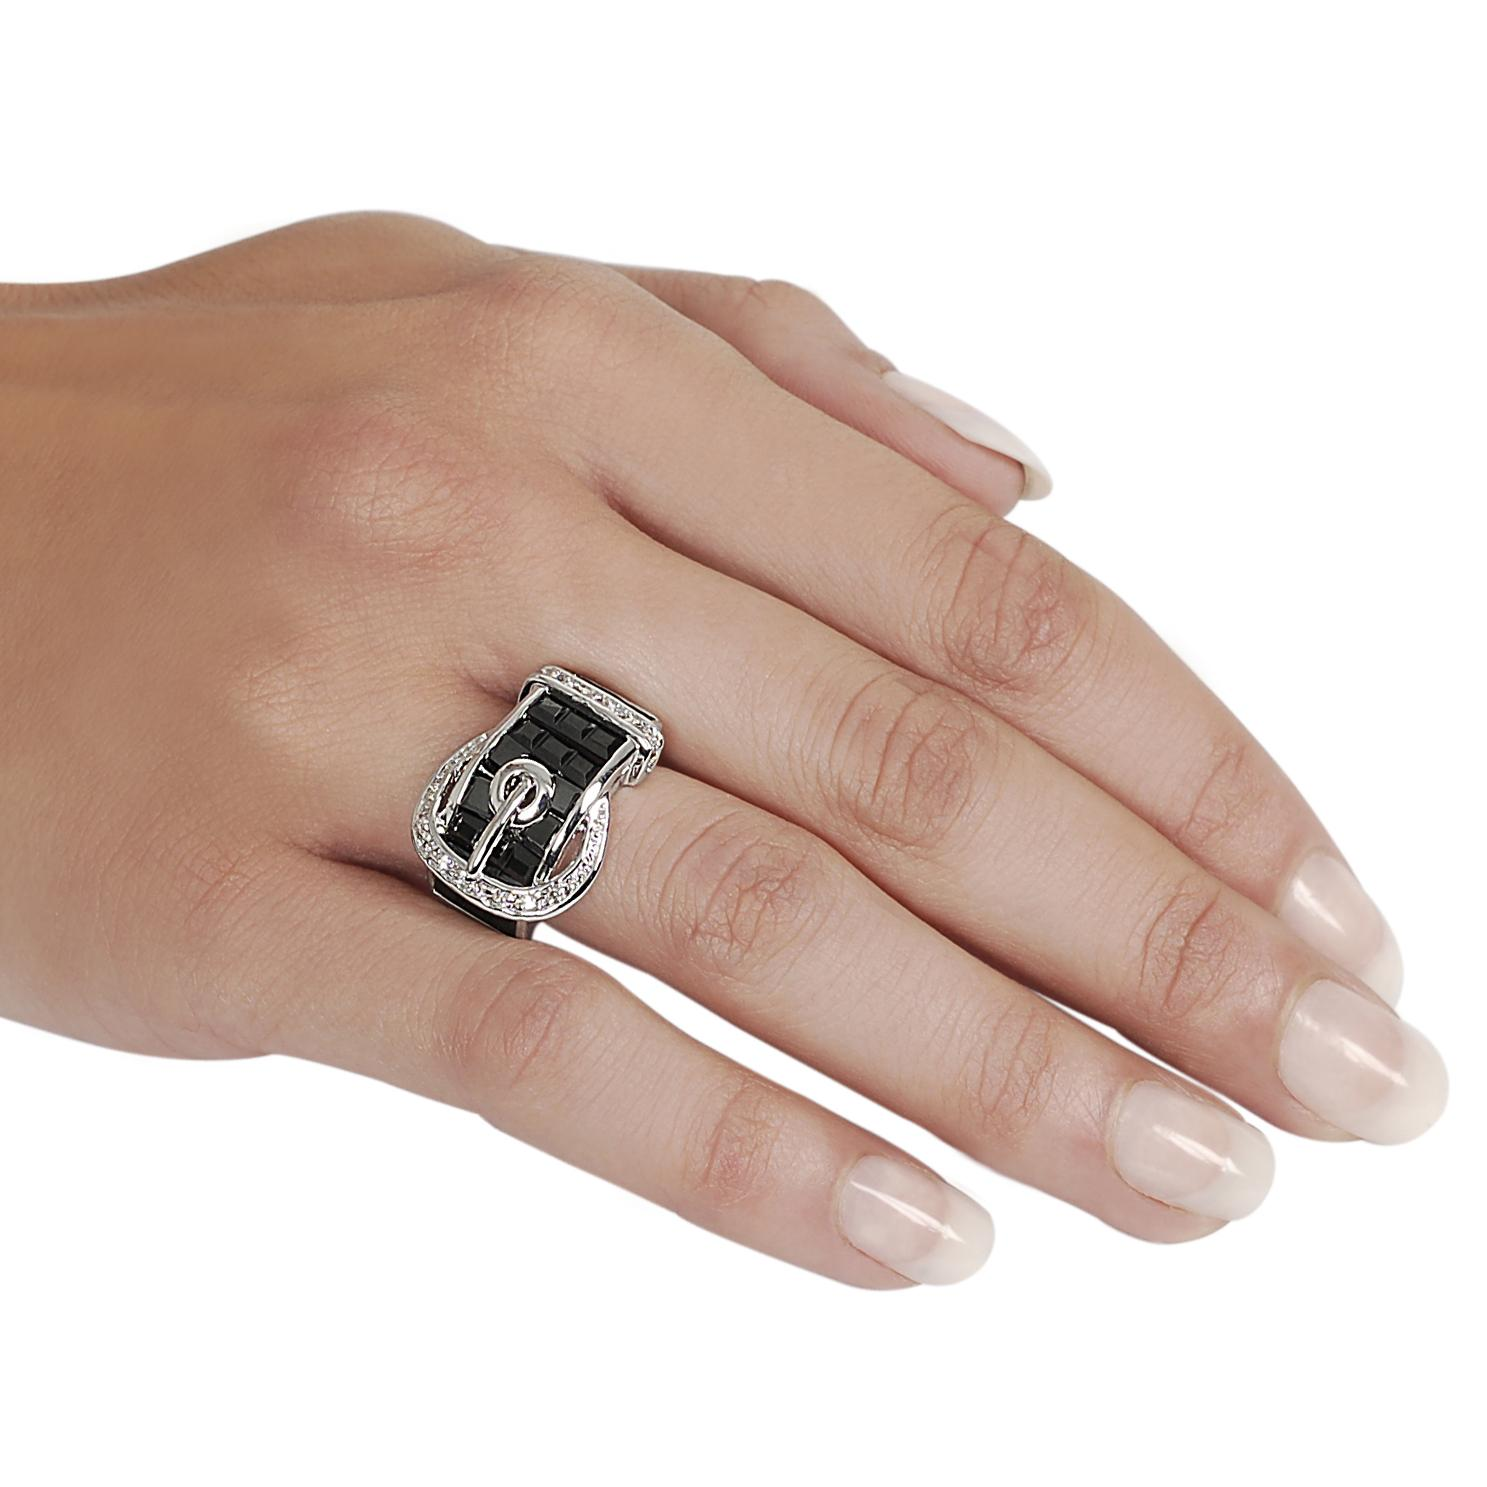 Journee Collection Silvertone CZ and Created Onyx Buckle Ring - Thumbnail 2